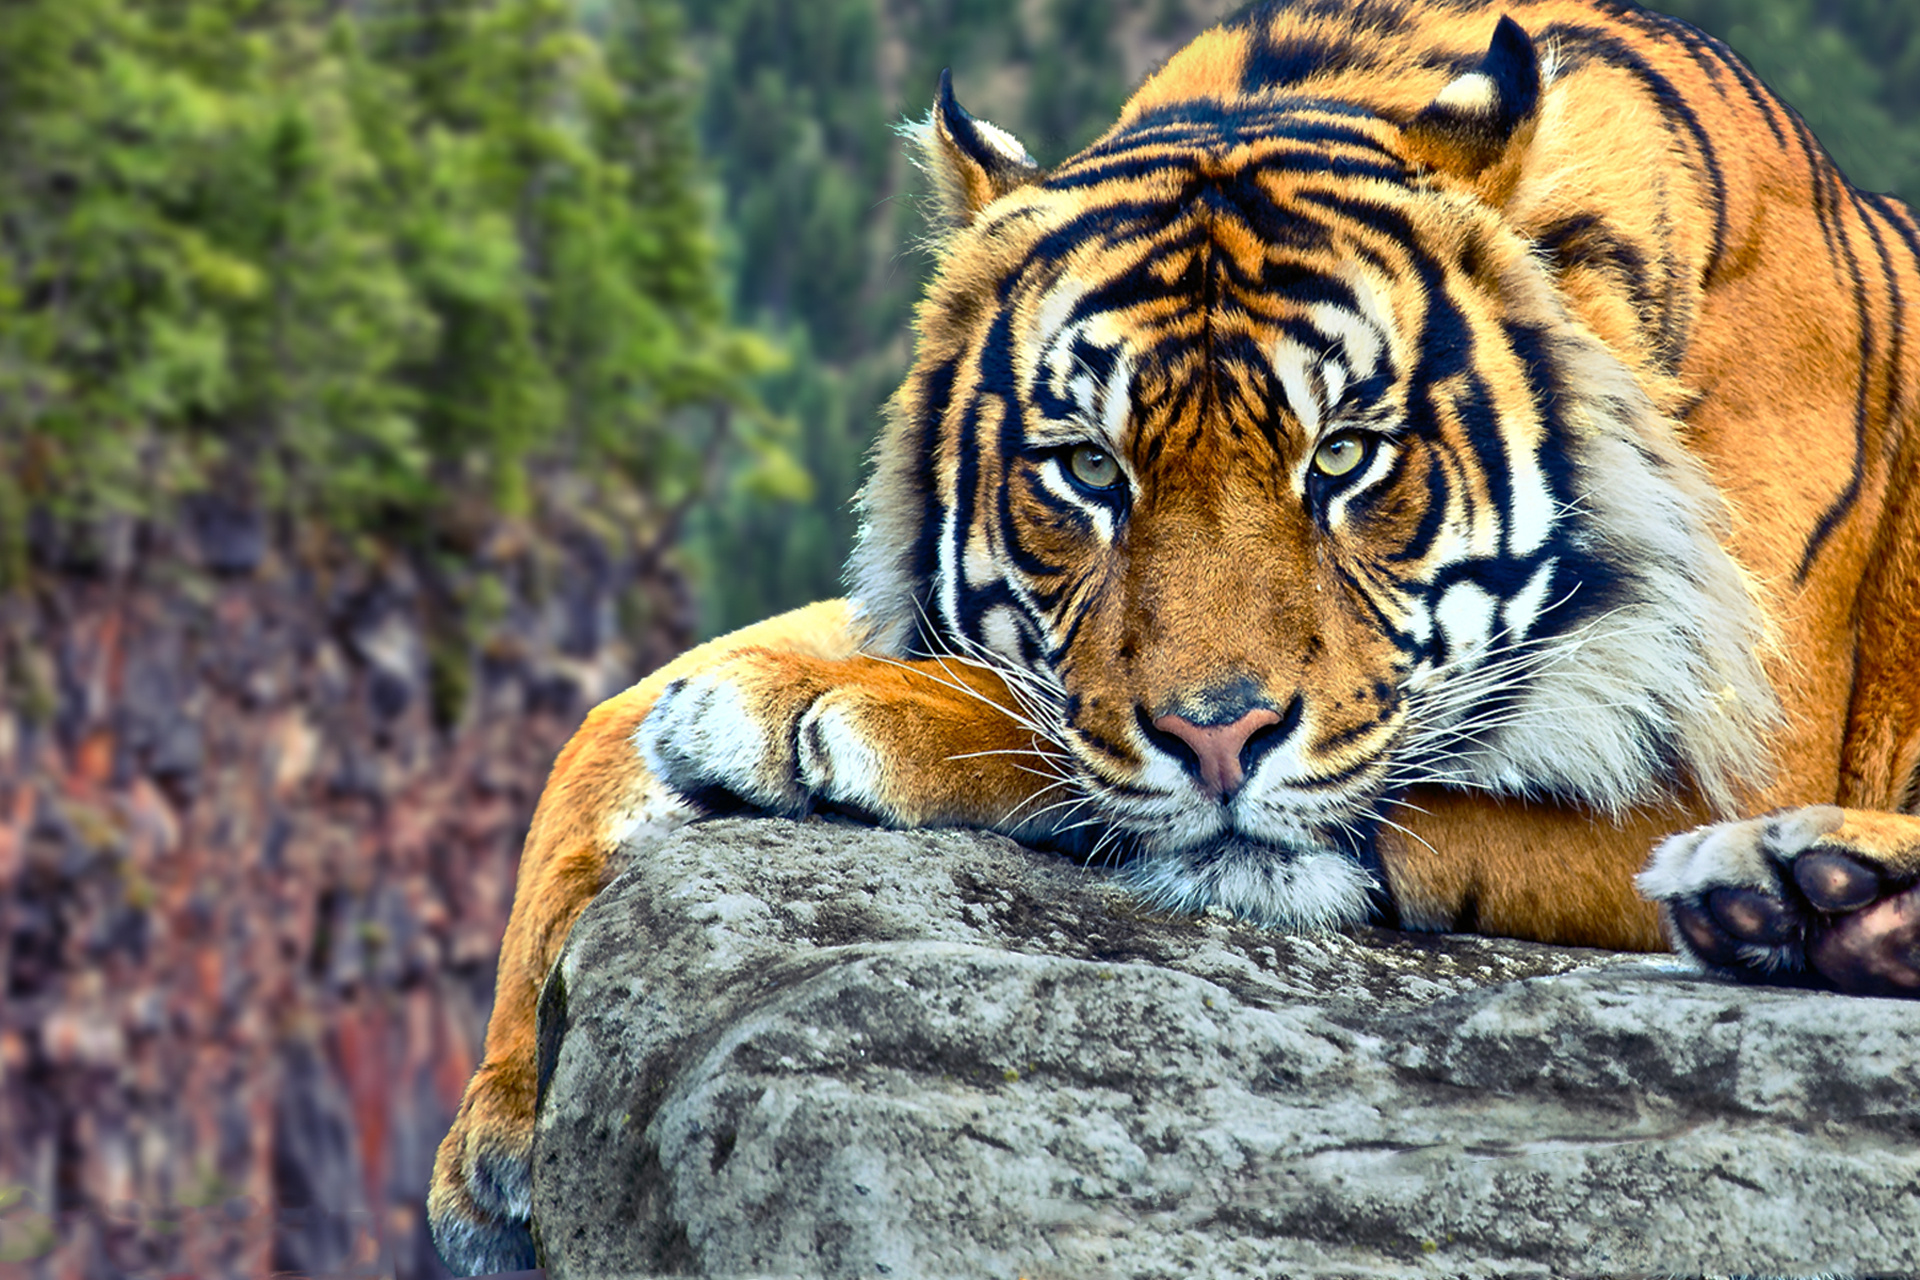 Tiger Wallpapers Backgrounds Images 1920x1080  Best